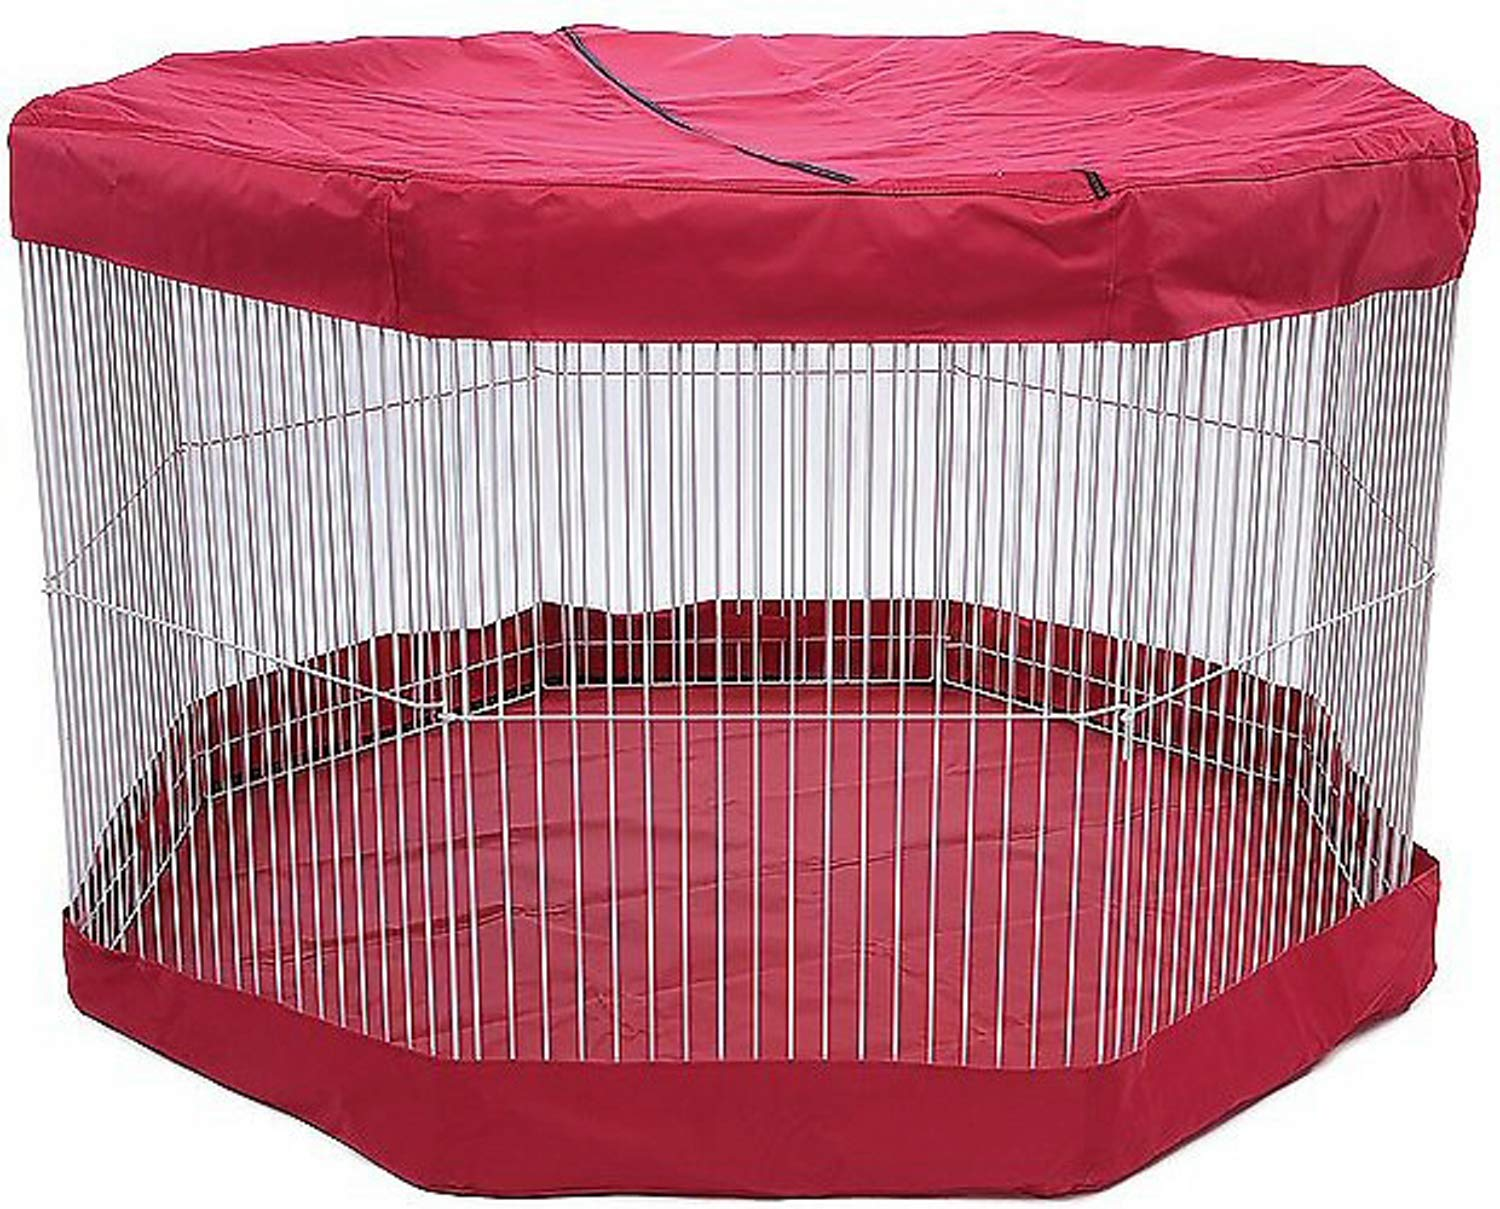 Marshall Mat/Cover for Small Animal Play Pens, Deluxe, 11 Panel, 2 Pack by Marshall (Image #4)